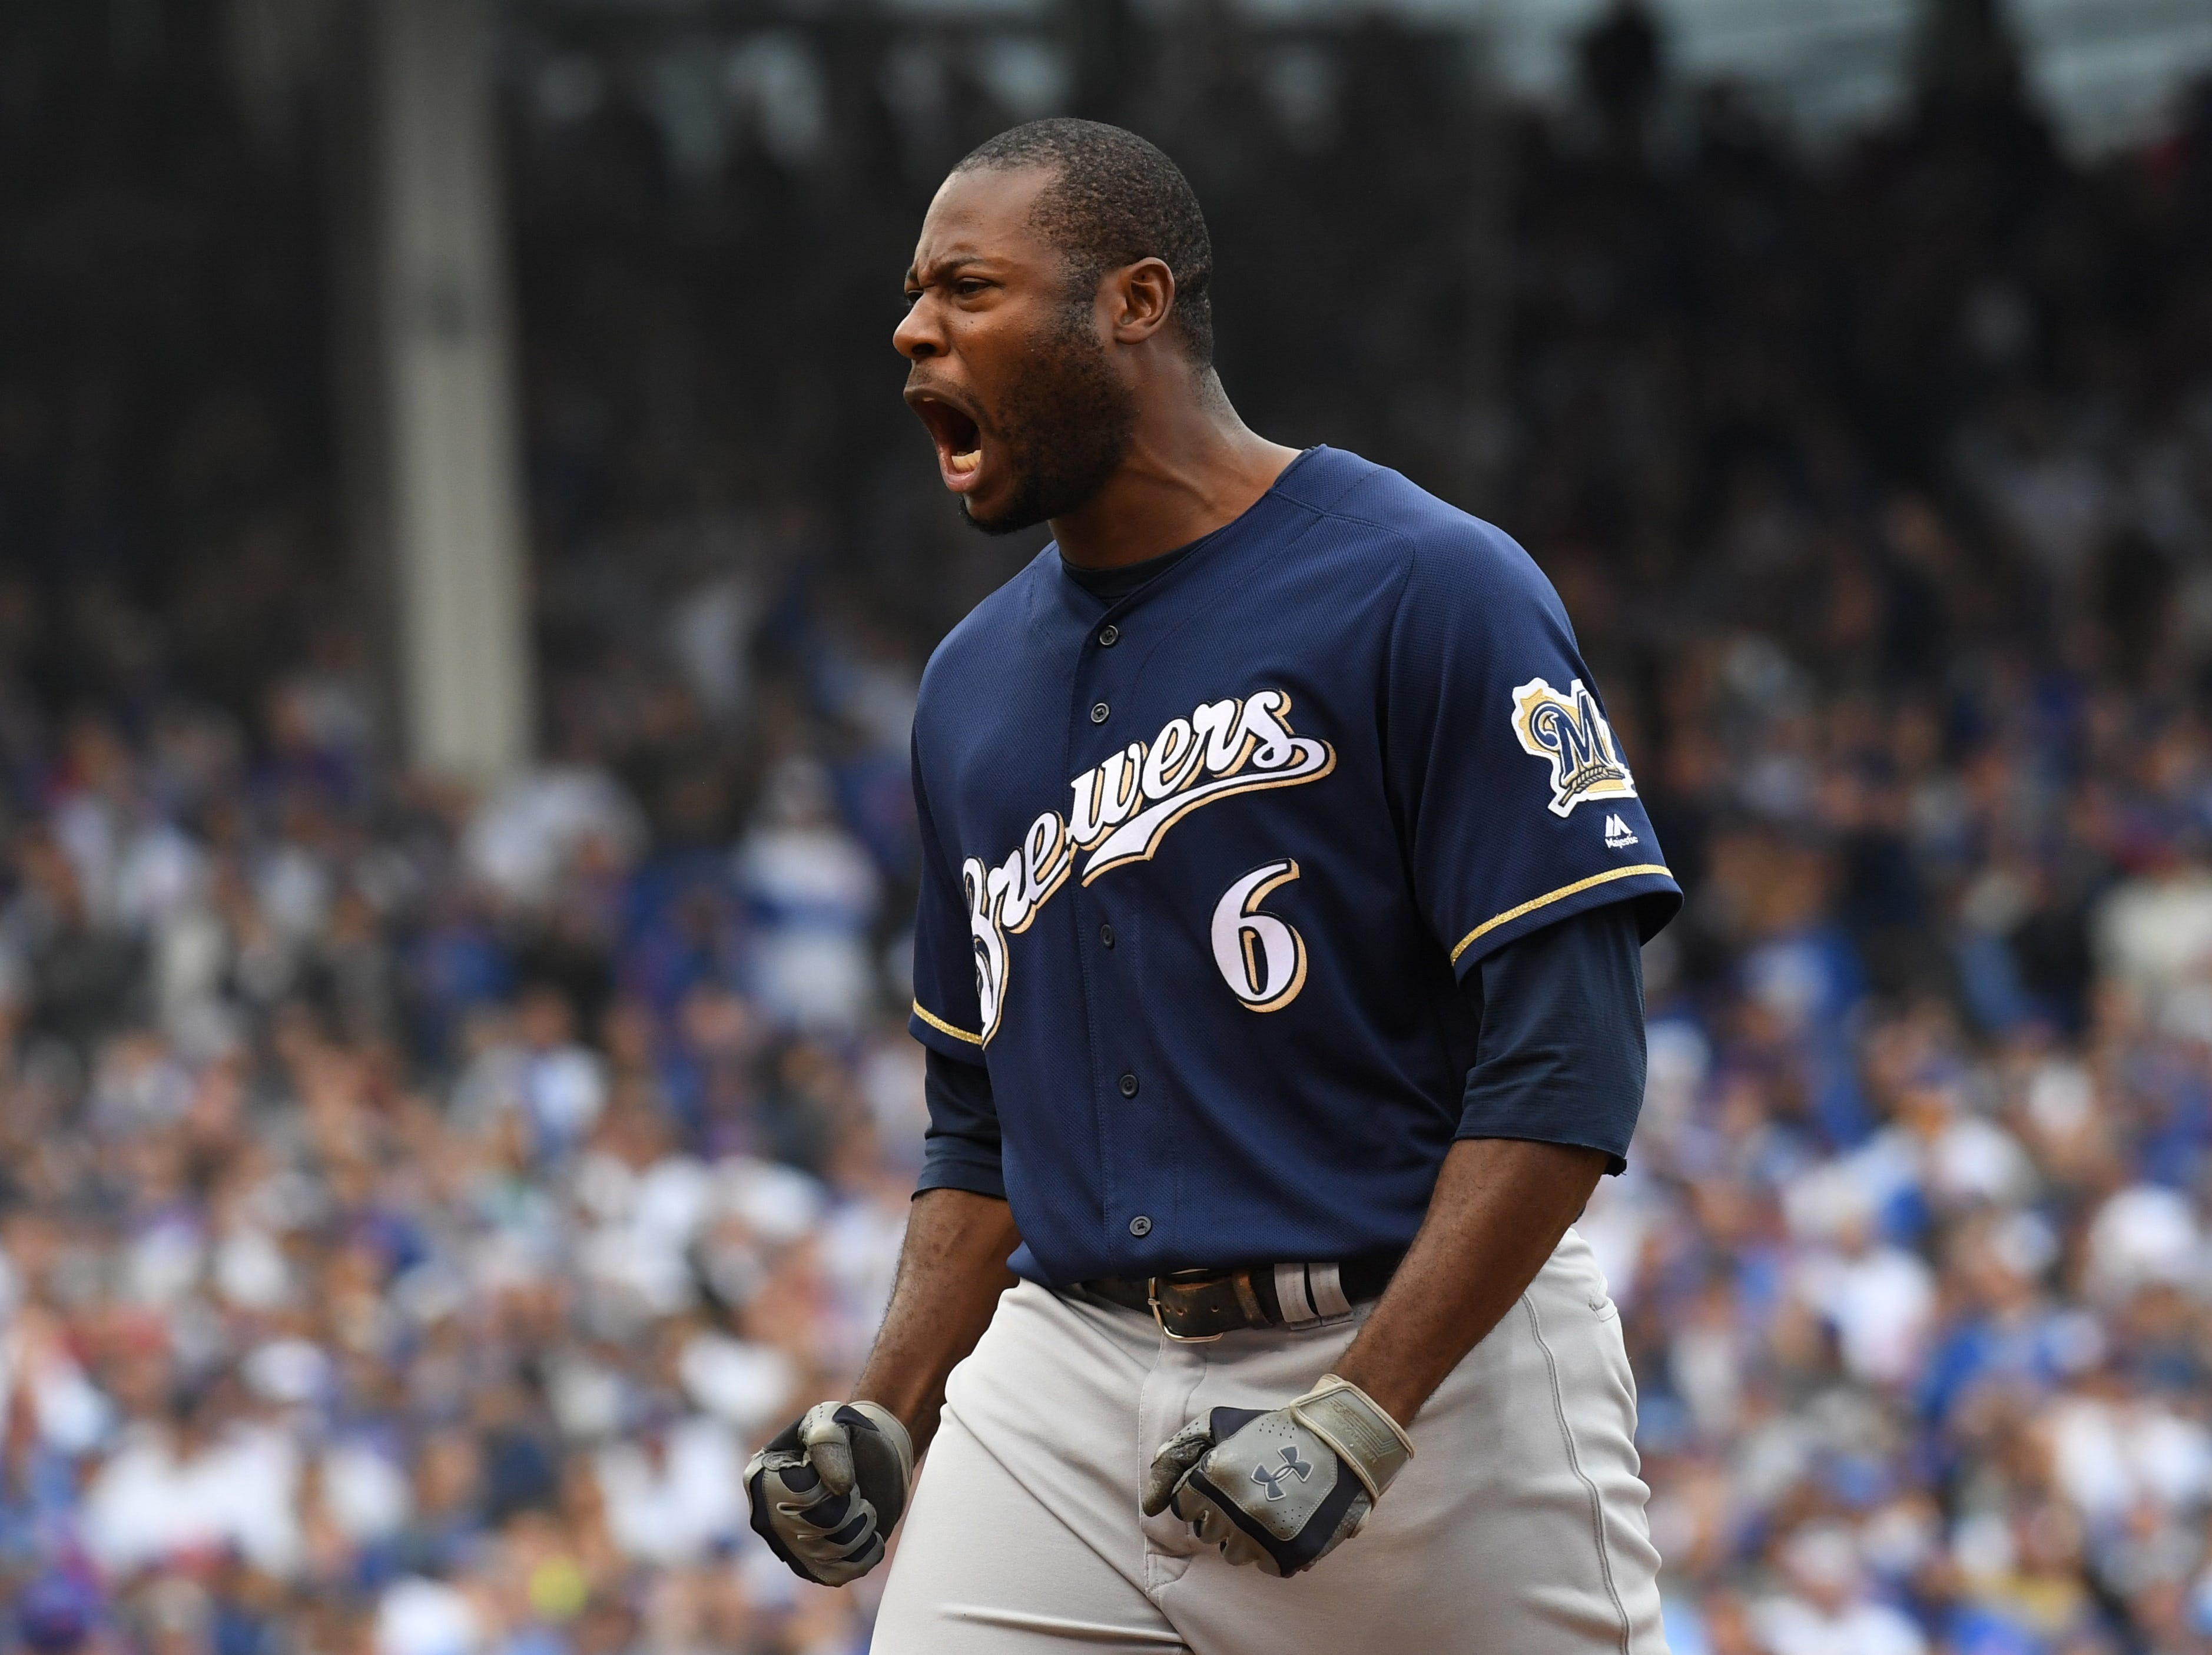 Lorenzo Cain celebrates after his go-ahead RBI single in the eighth inning.